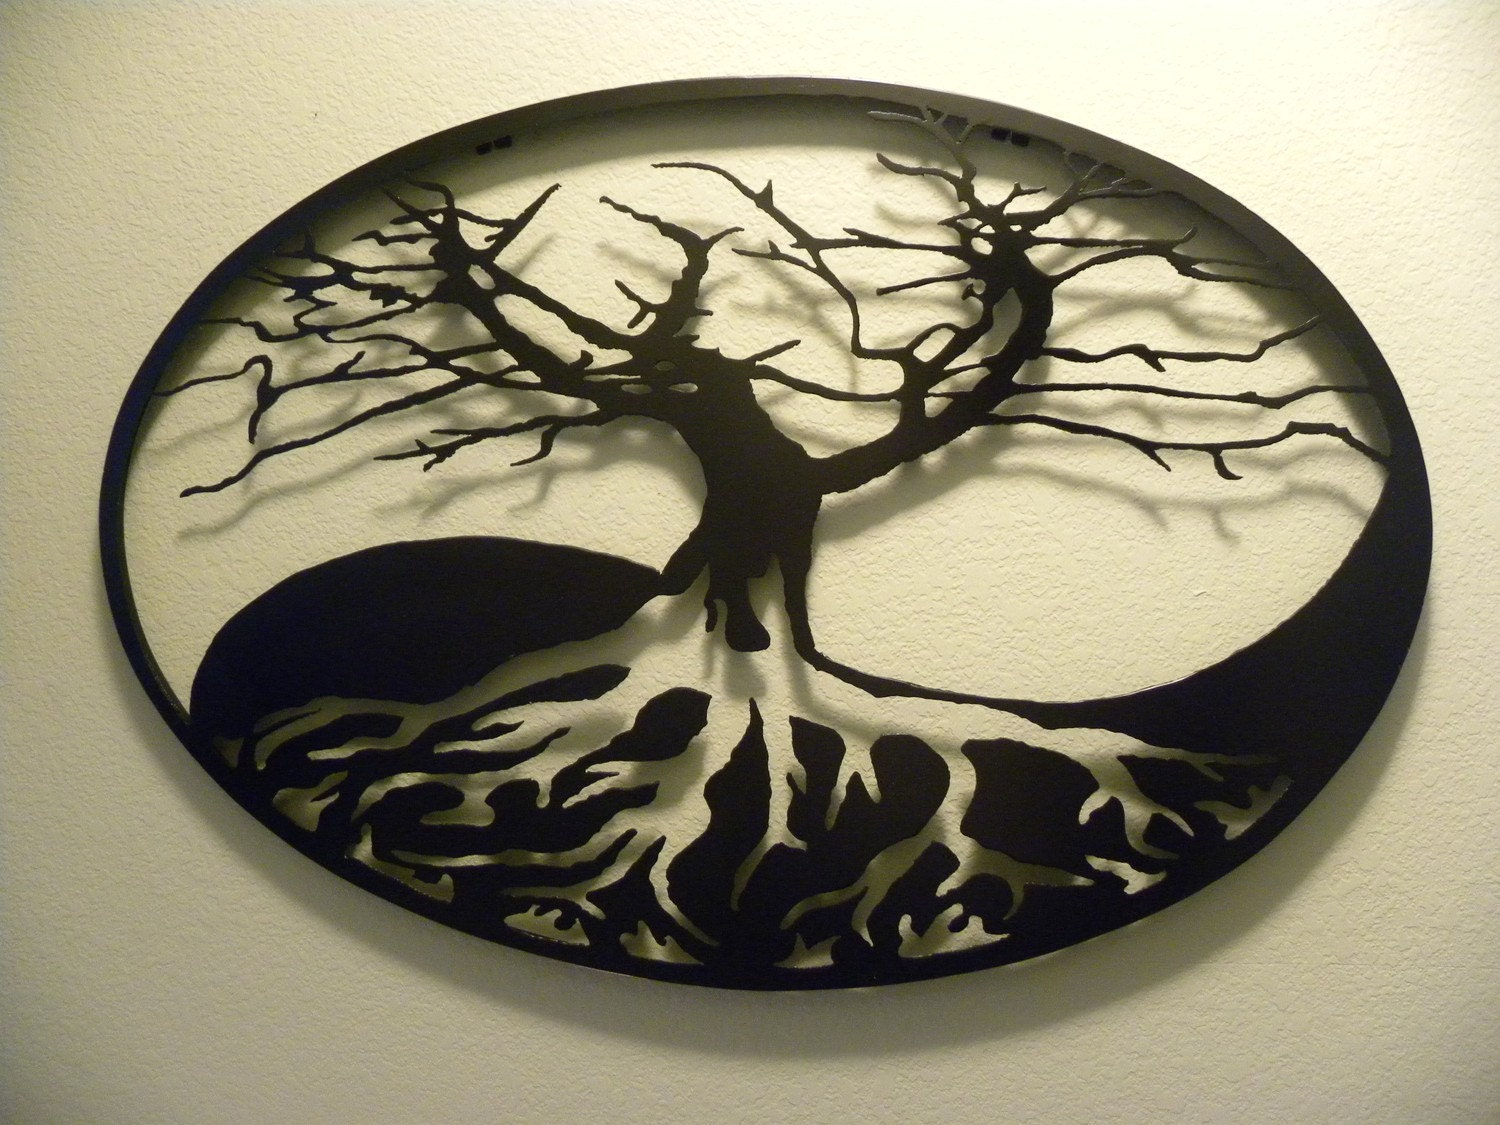 oval yin yang tree of life metal wall art by vanmetalarts. Black Bedroom Furniture Sets. Home Design Ideas